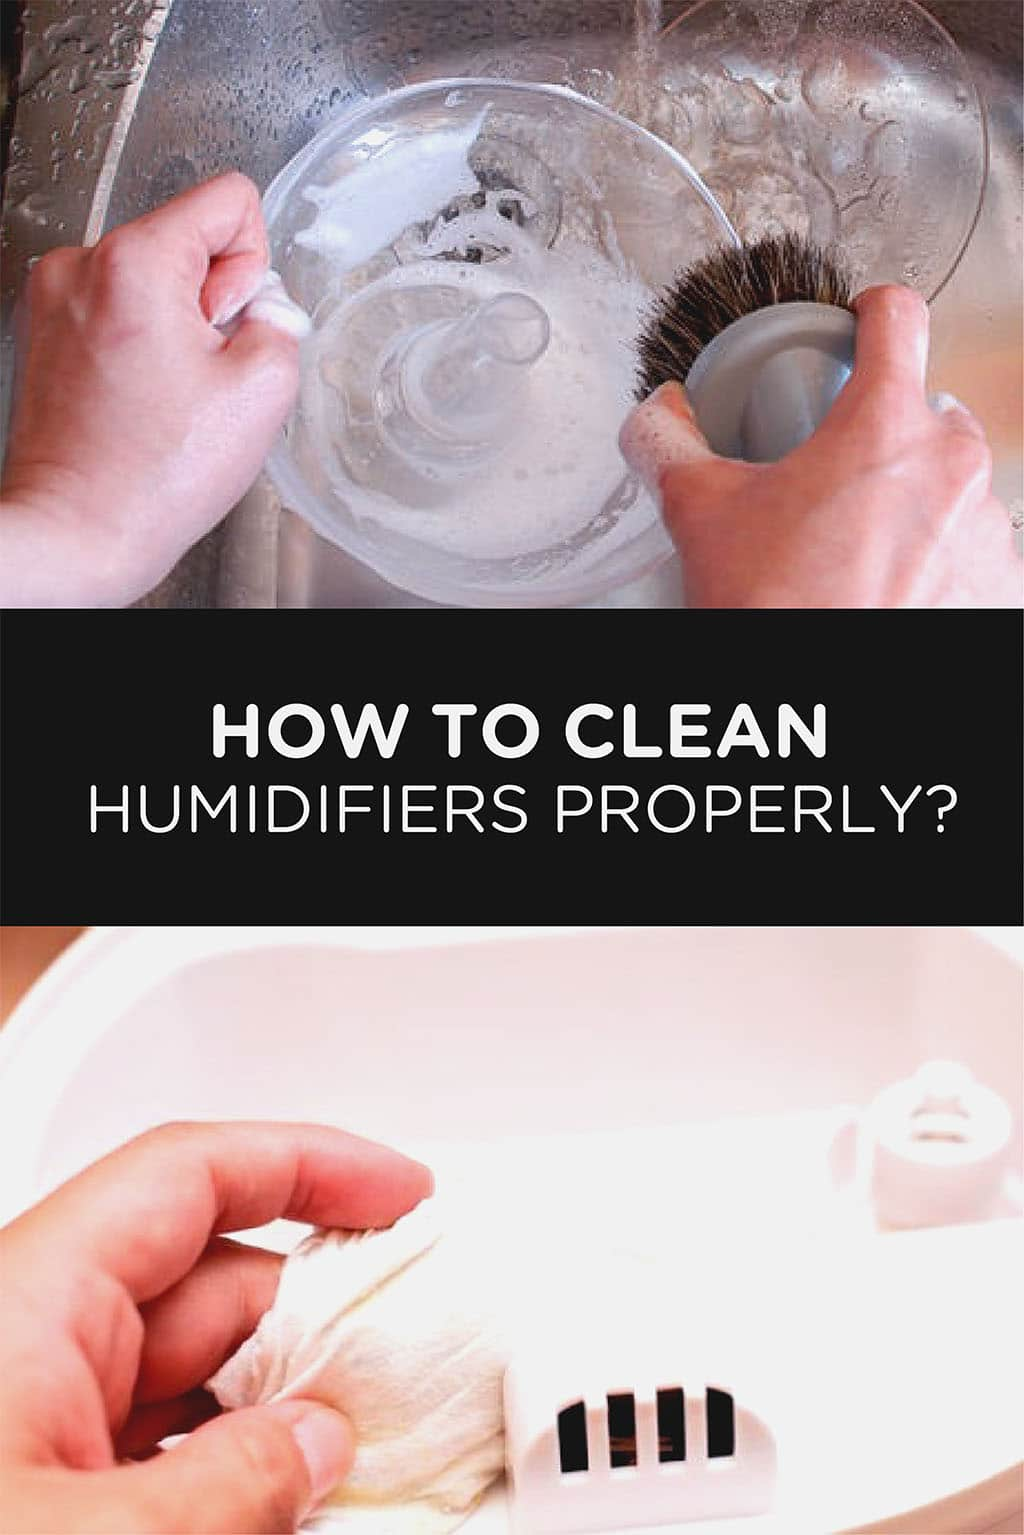 How to Clean Humidifiers Properly